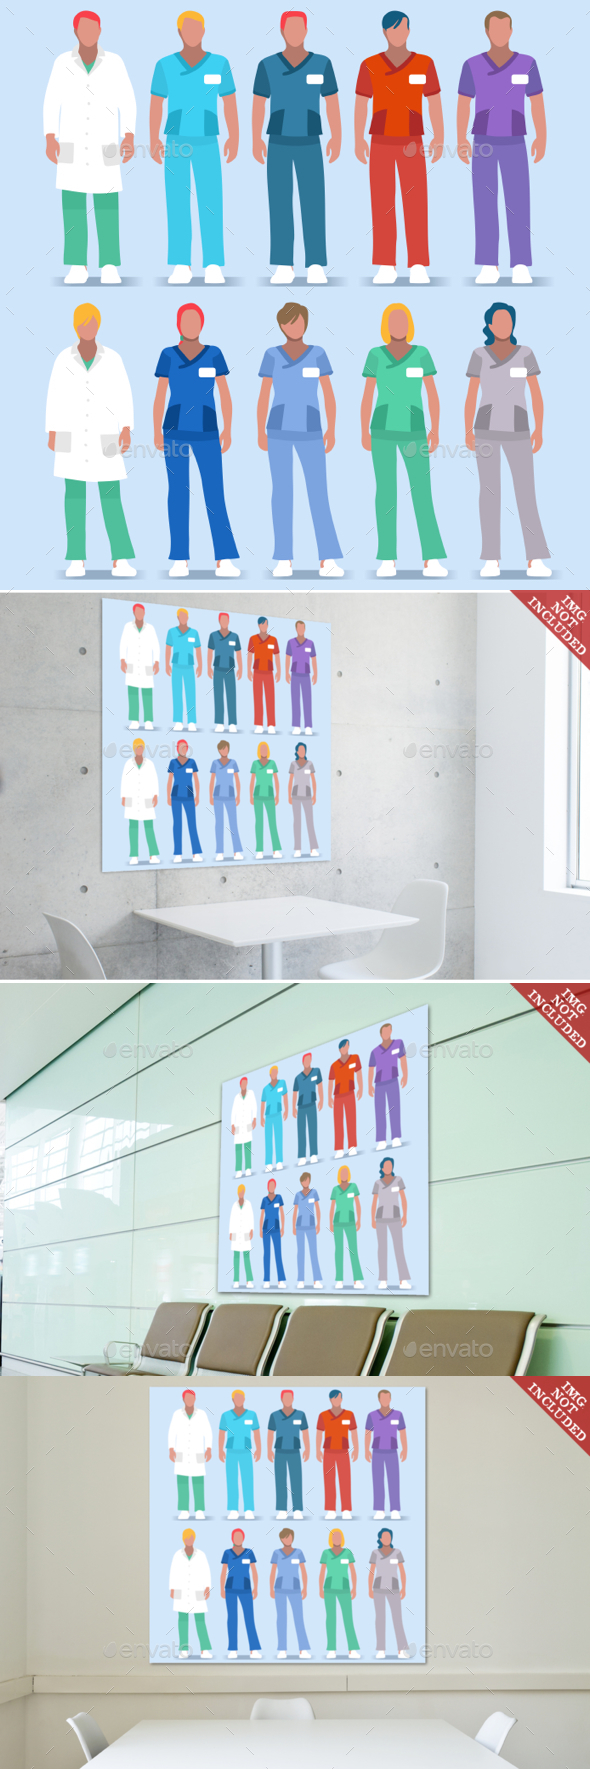 Hospital 01 People 2D - Health/Medicine Conceptual